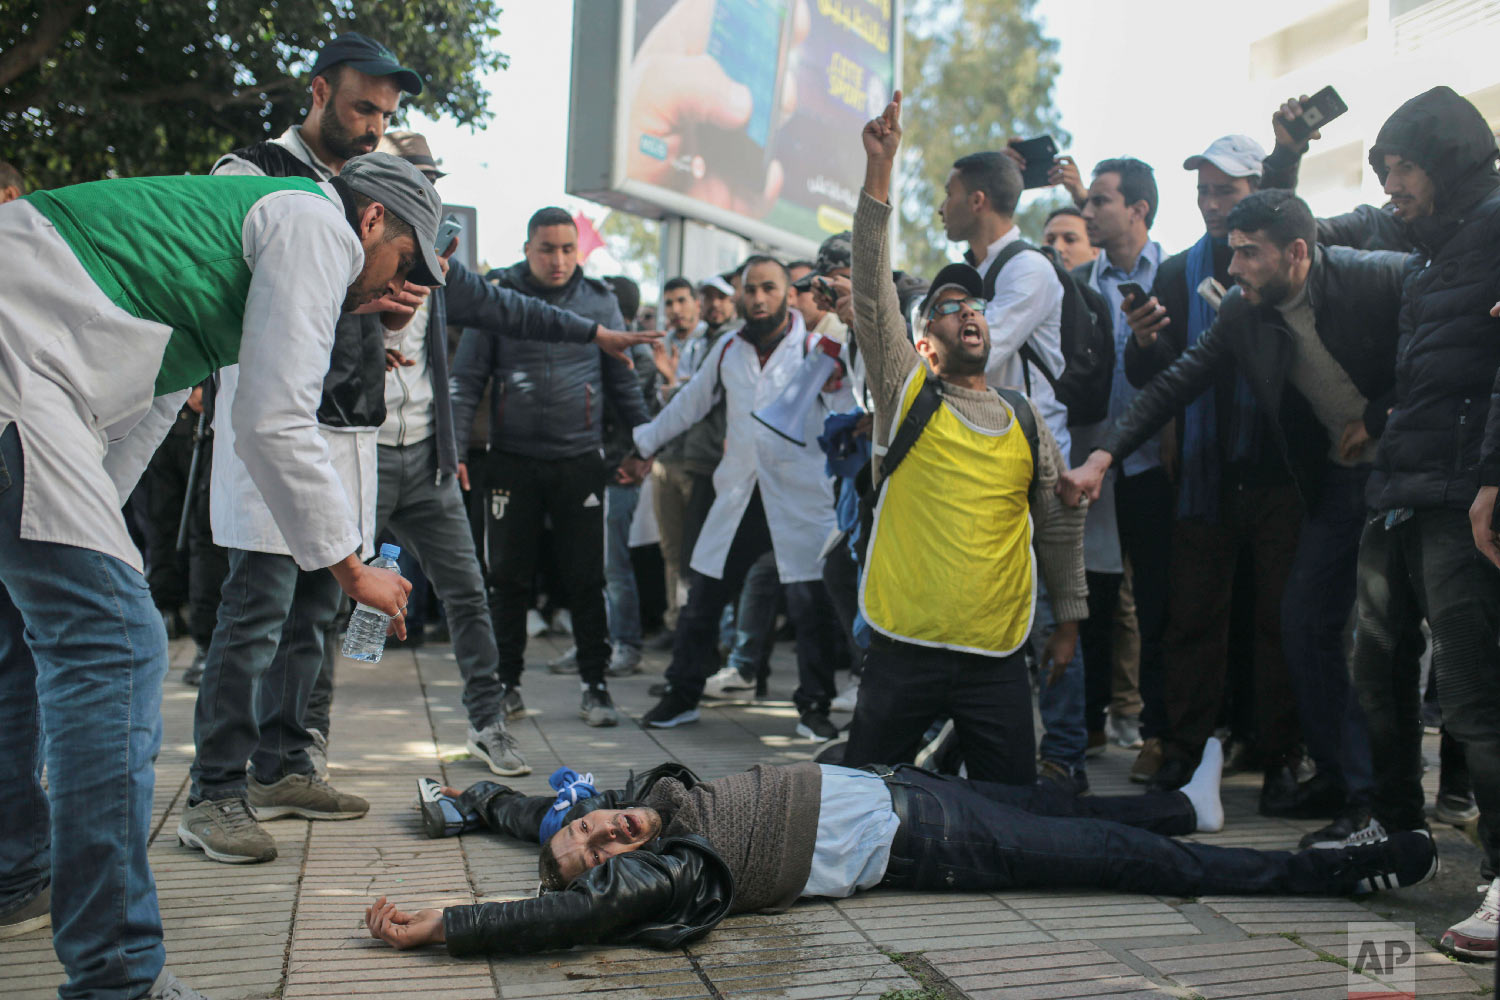 An injured protesting teacher is tended to by fellow protesters after security forces used water cannons and batons to disperse a demonstration in Rabat, Morocco, Feb. 20, 2019. (AP Photo/Mosa'ab Elshamy)